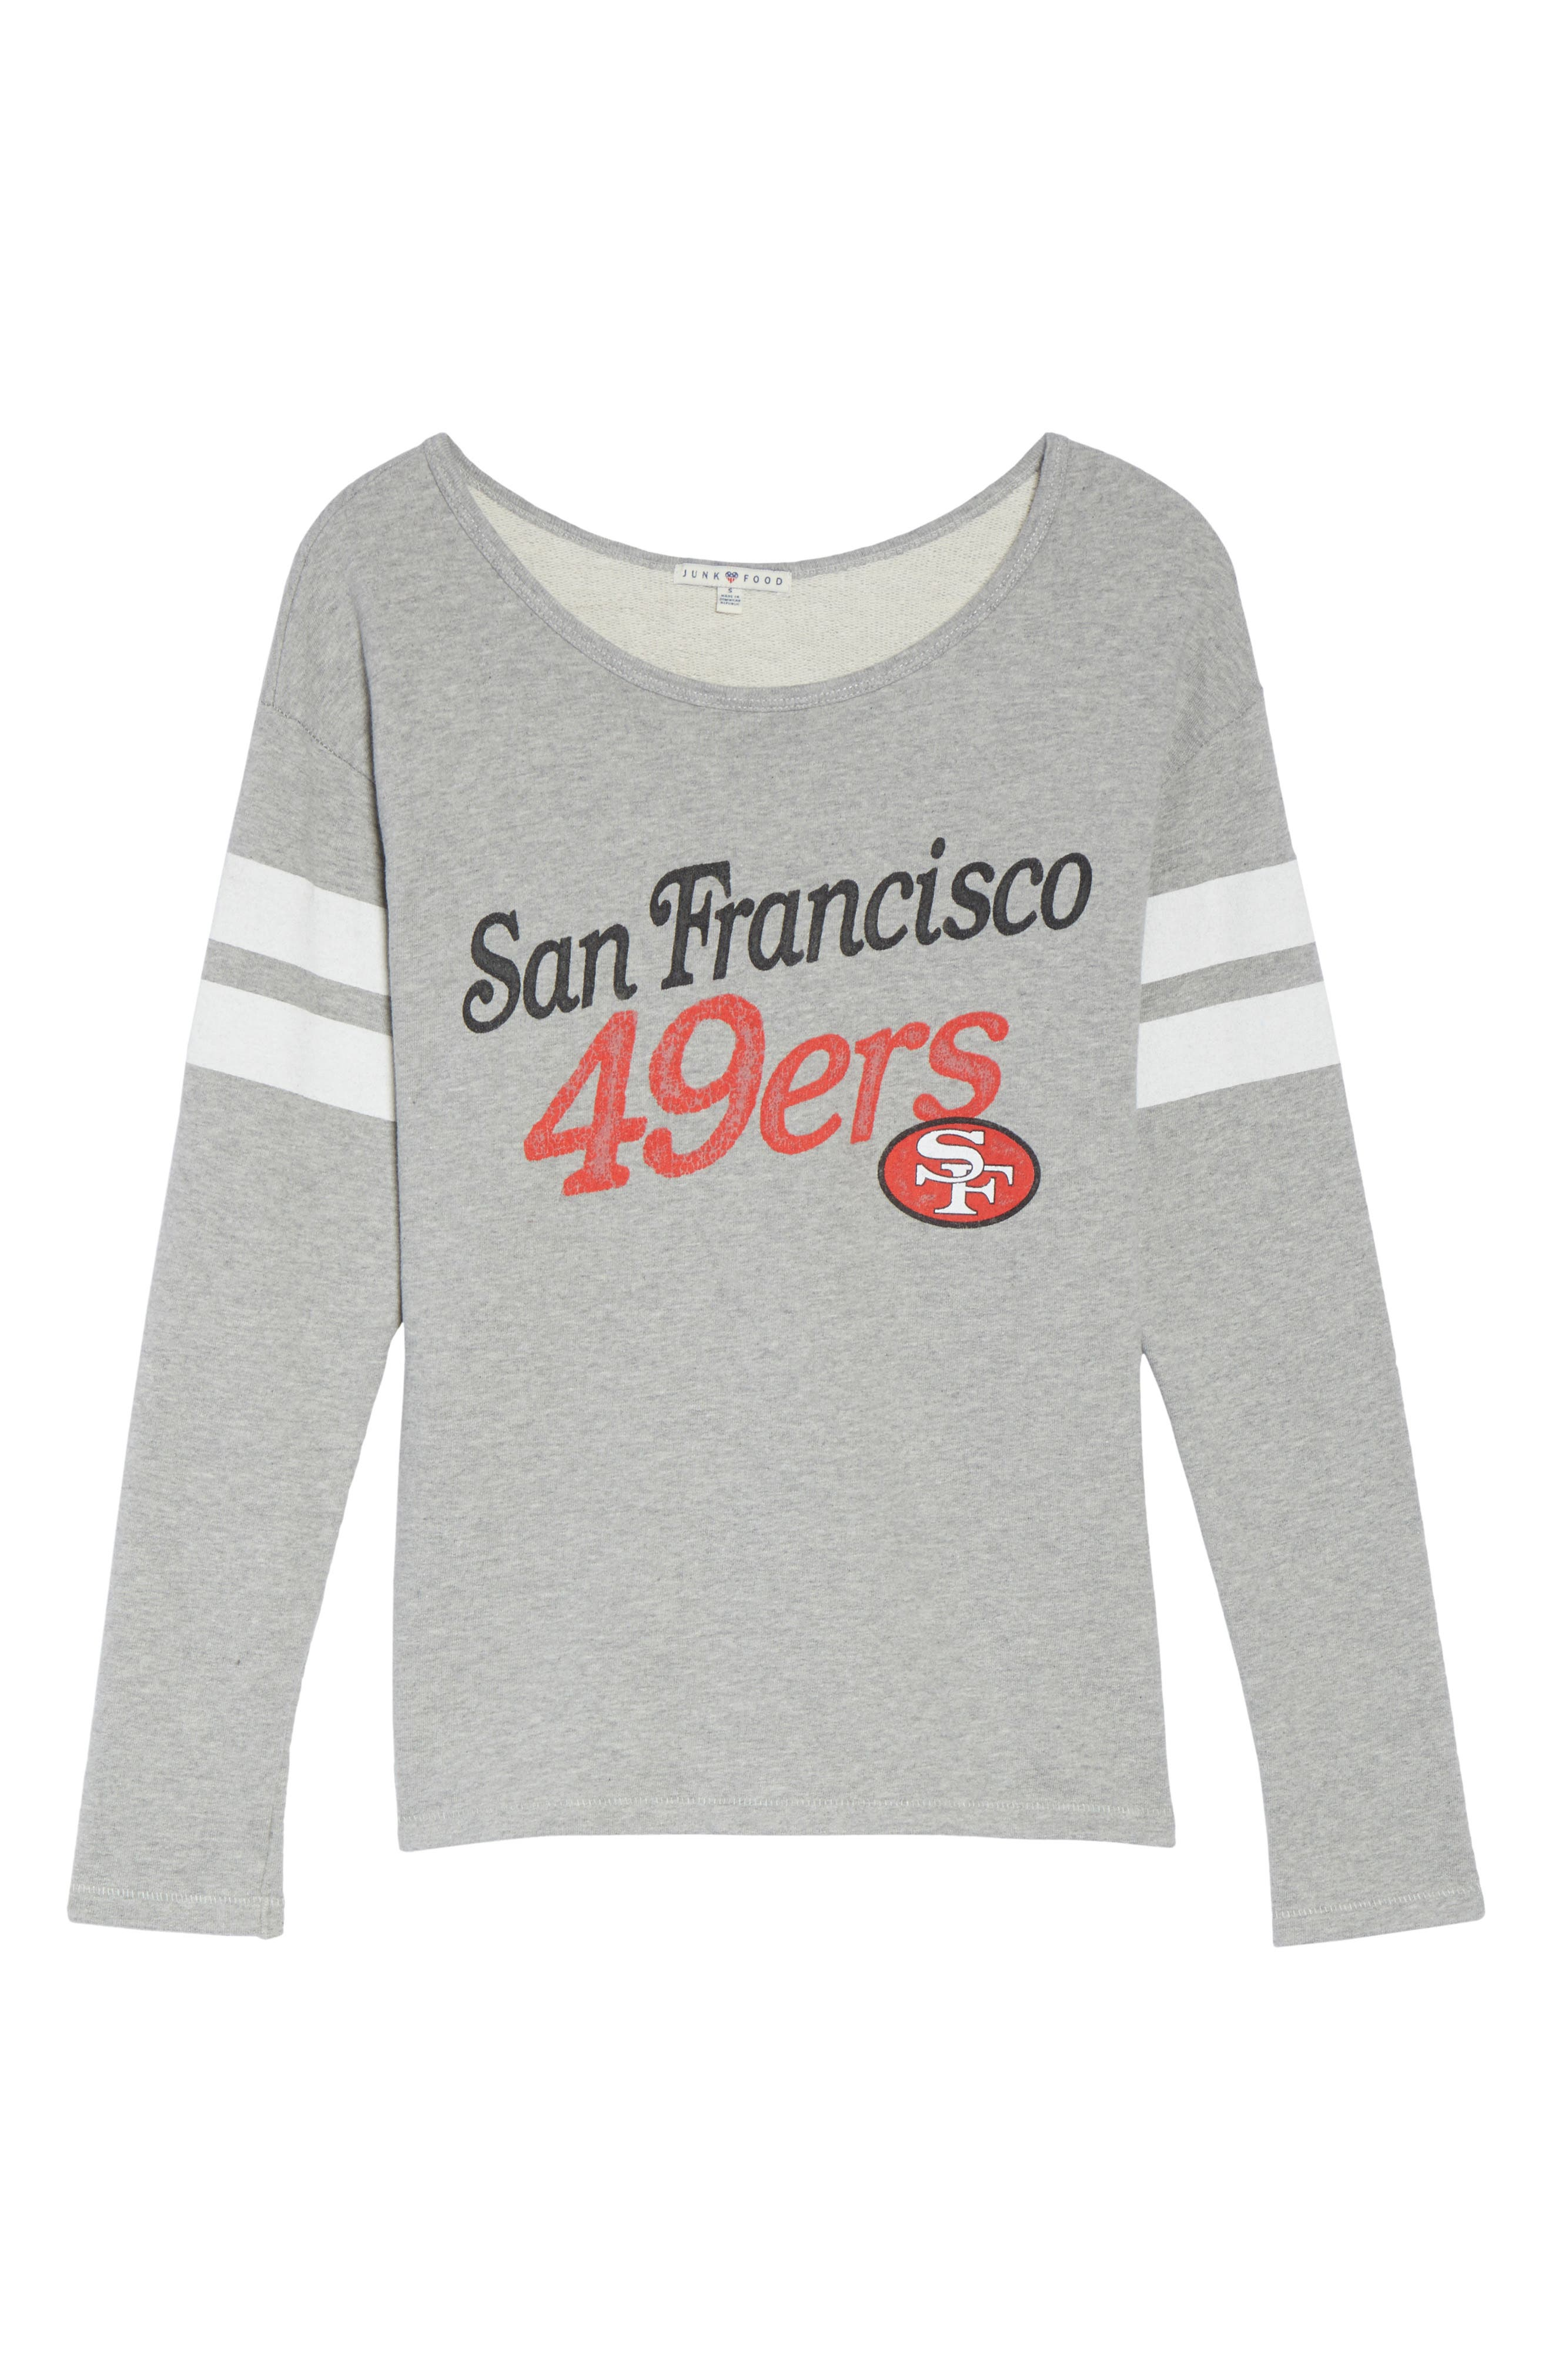 NFL San Francisco 49ers Champion Sweatshirt,                             Alternate thumbnail 4, color,                             Heather Grey